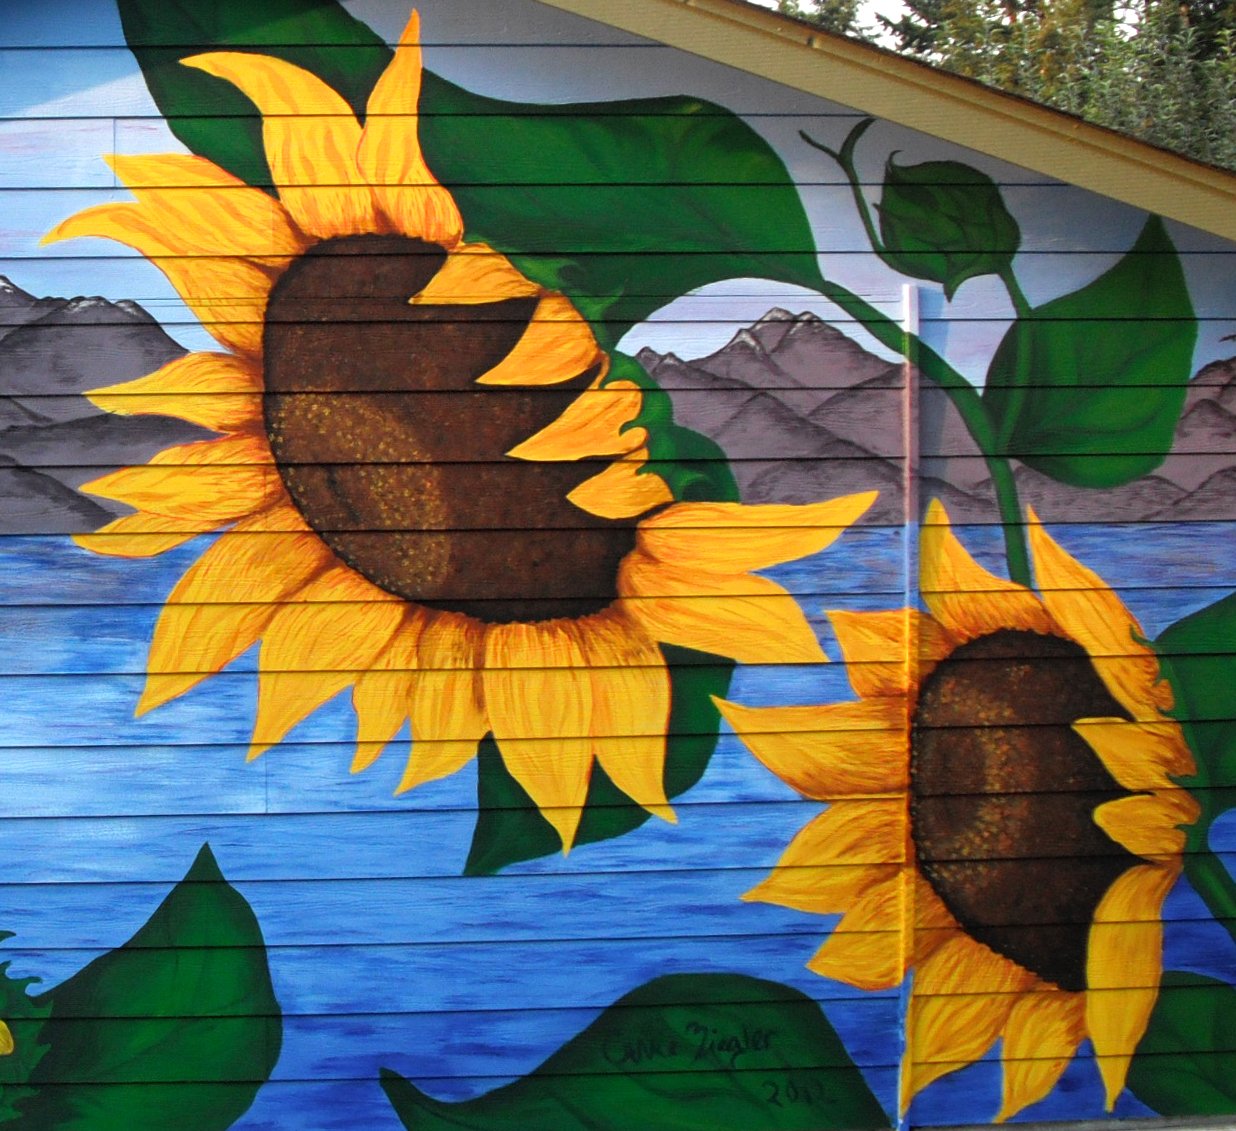 Sunflowers Mural Detail 2.jpg